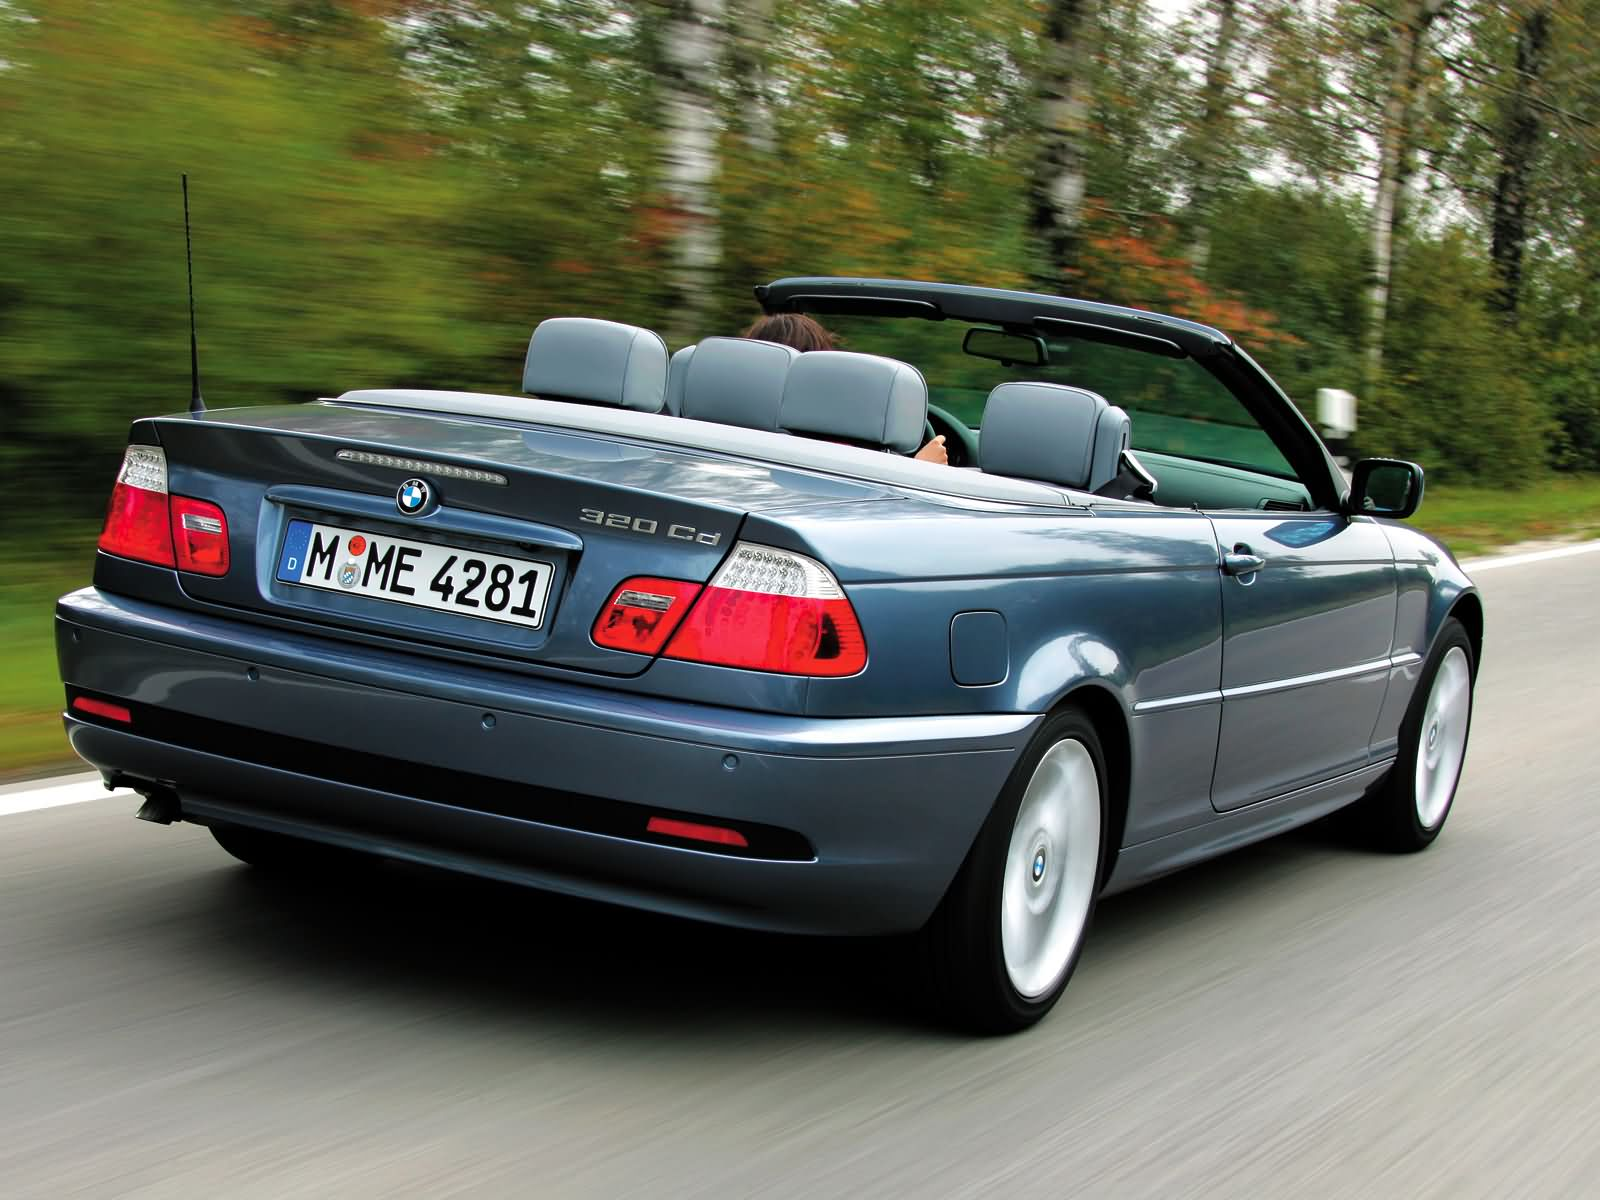 2004 Bmw 325ci Specs >> BMW 3 Series Cabriolet (E46) specs & photos - 2003, 2004, 2005, 2006, 2007 - autoevolution